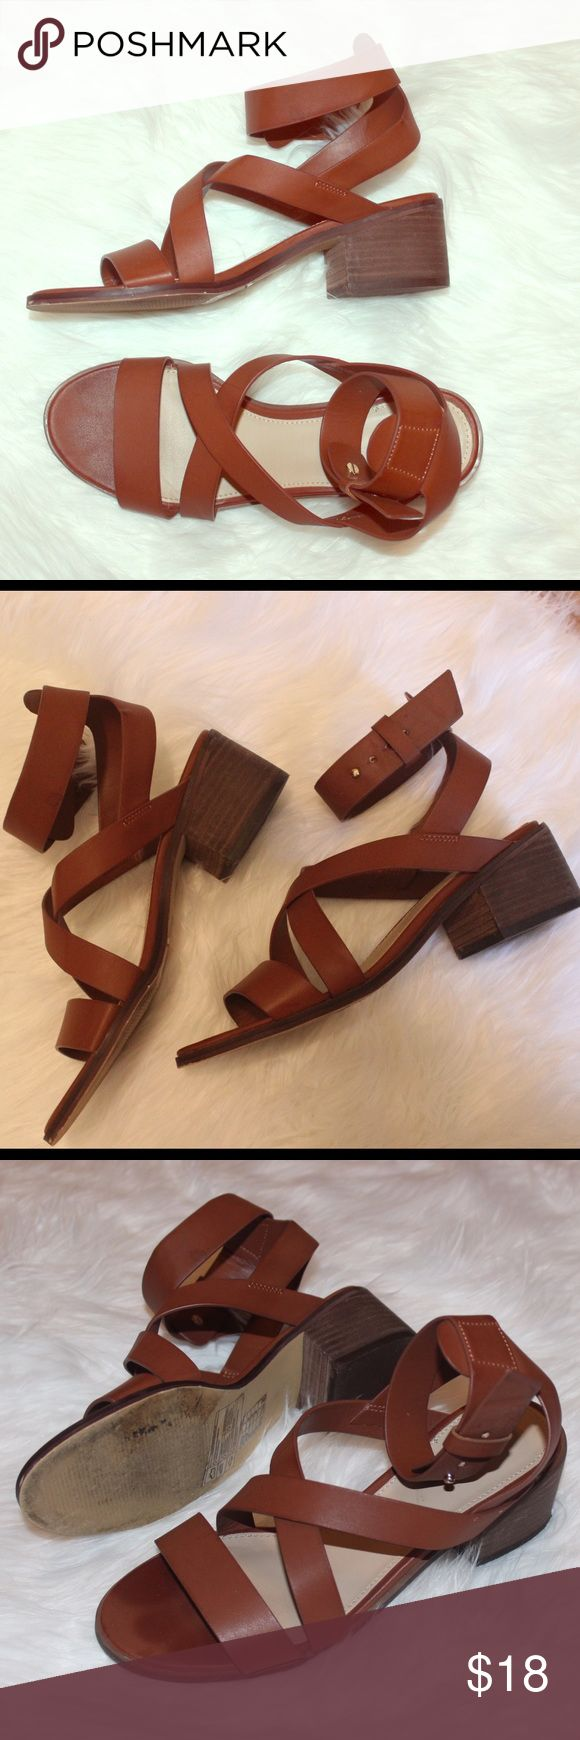 FREE SHIP Low Chunky Heel Sandals chestnut color, worn barely but in amazing condition see pictures ✨ Forever 21 Shoes Sandals